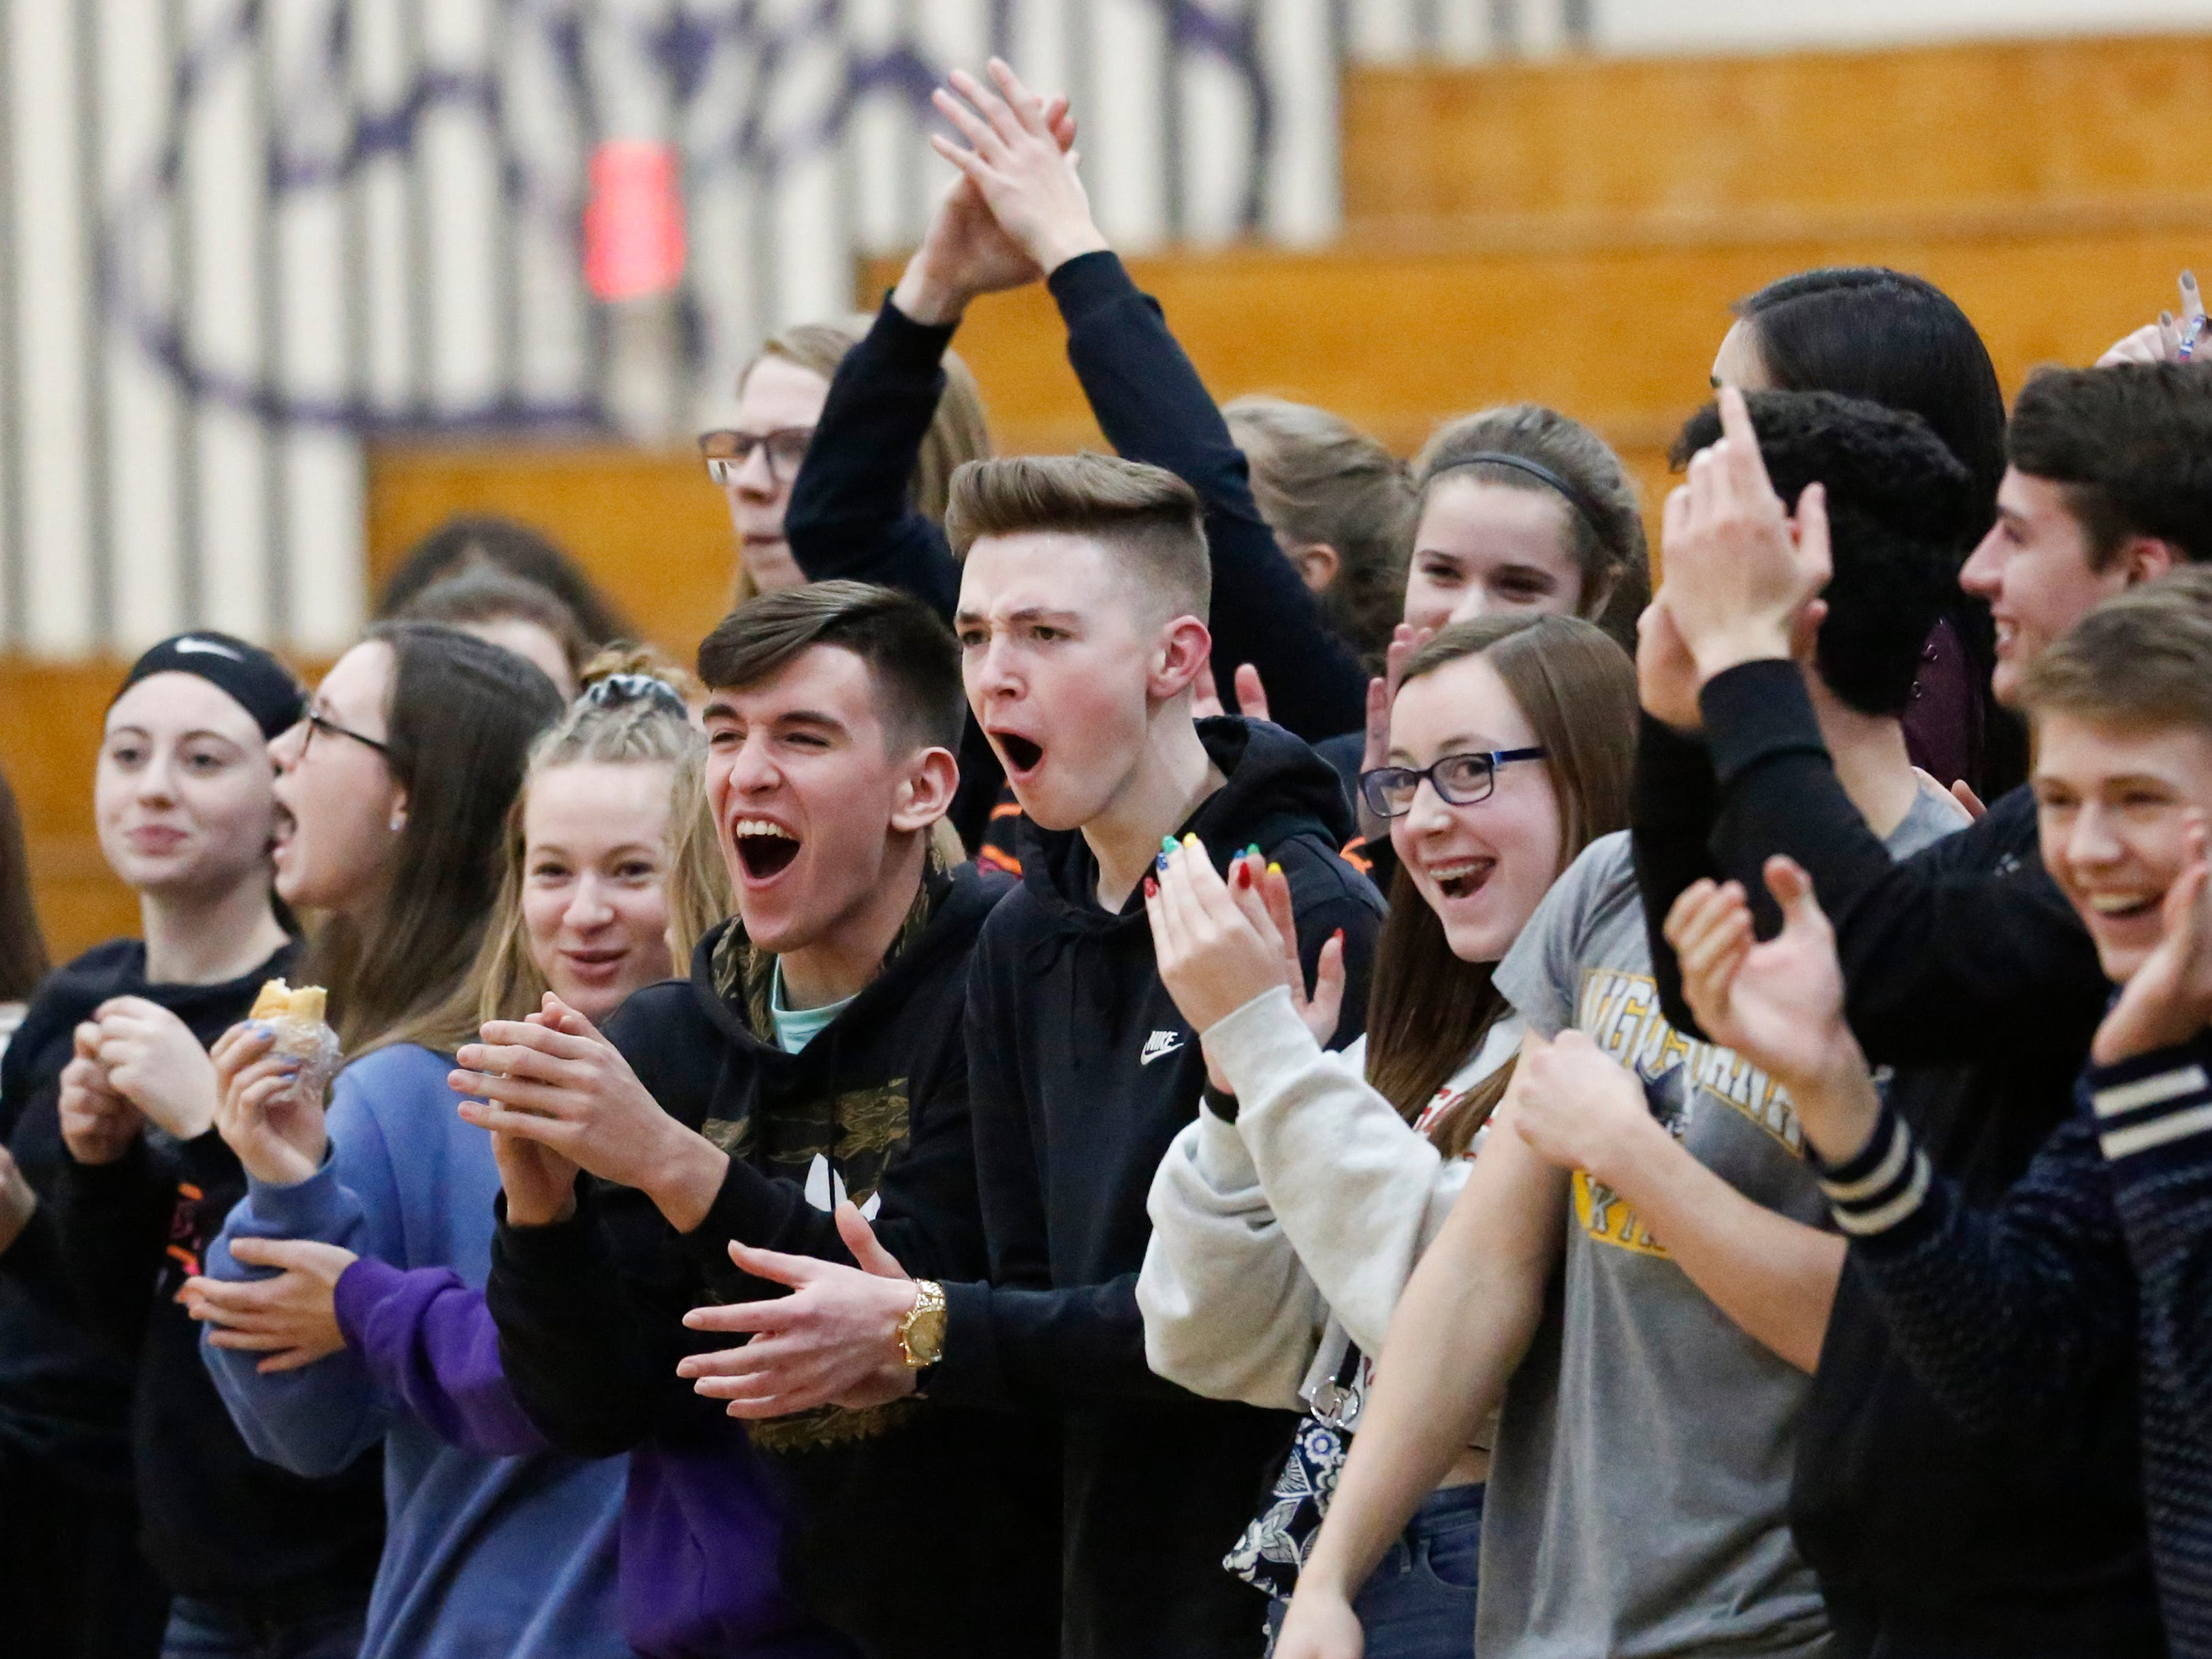 Two Rivers' student section cheers on their team against Roncalli at Two Rivers High School Friday, February 1, 2019, in Two Rivers, Wis. Joshua Clark/USA TODAY NETWORK-Wisconsin